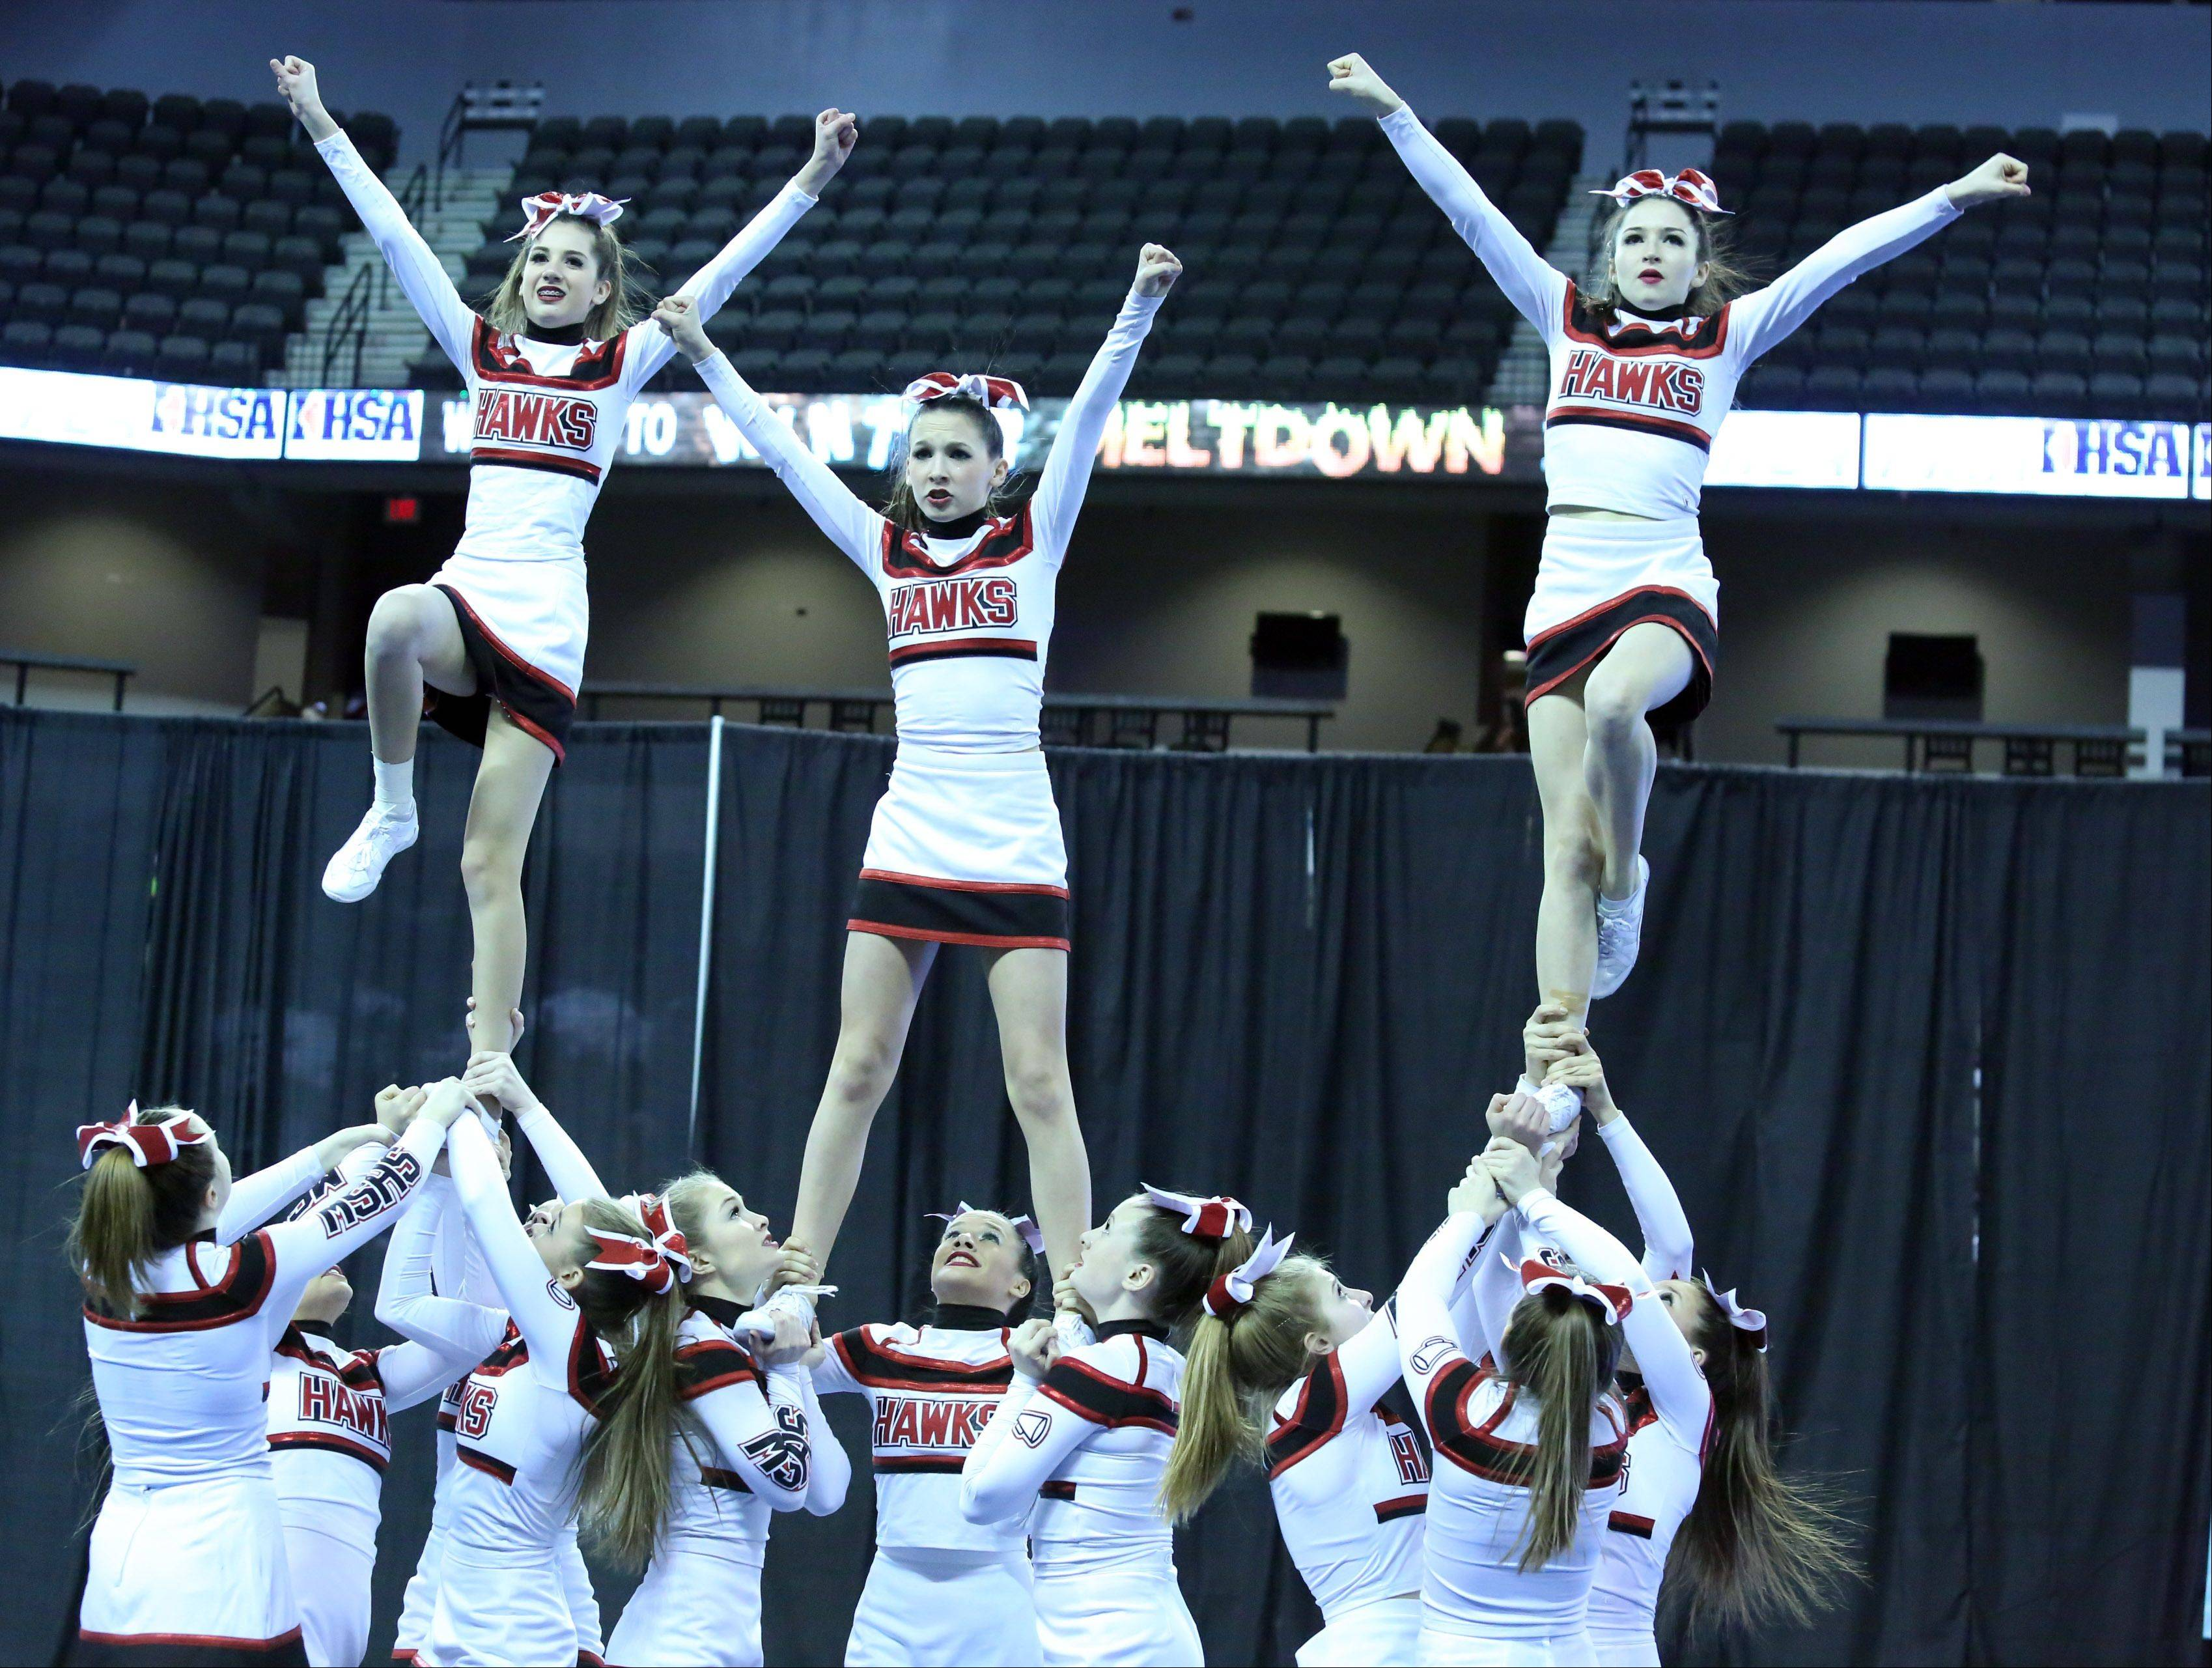 Maine South High School cheer team competes in the IHSA Winter Meltdown Cheerleading and Dance Competition at Sears Centre Arena on Saturday in Hoffman Estates.